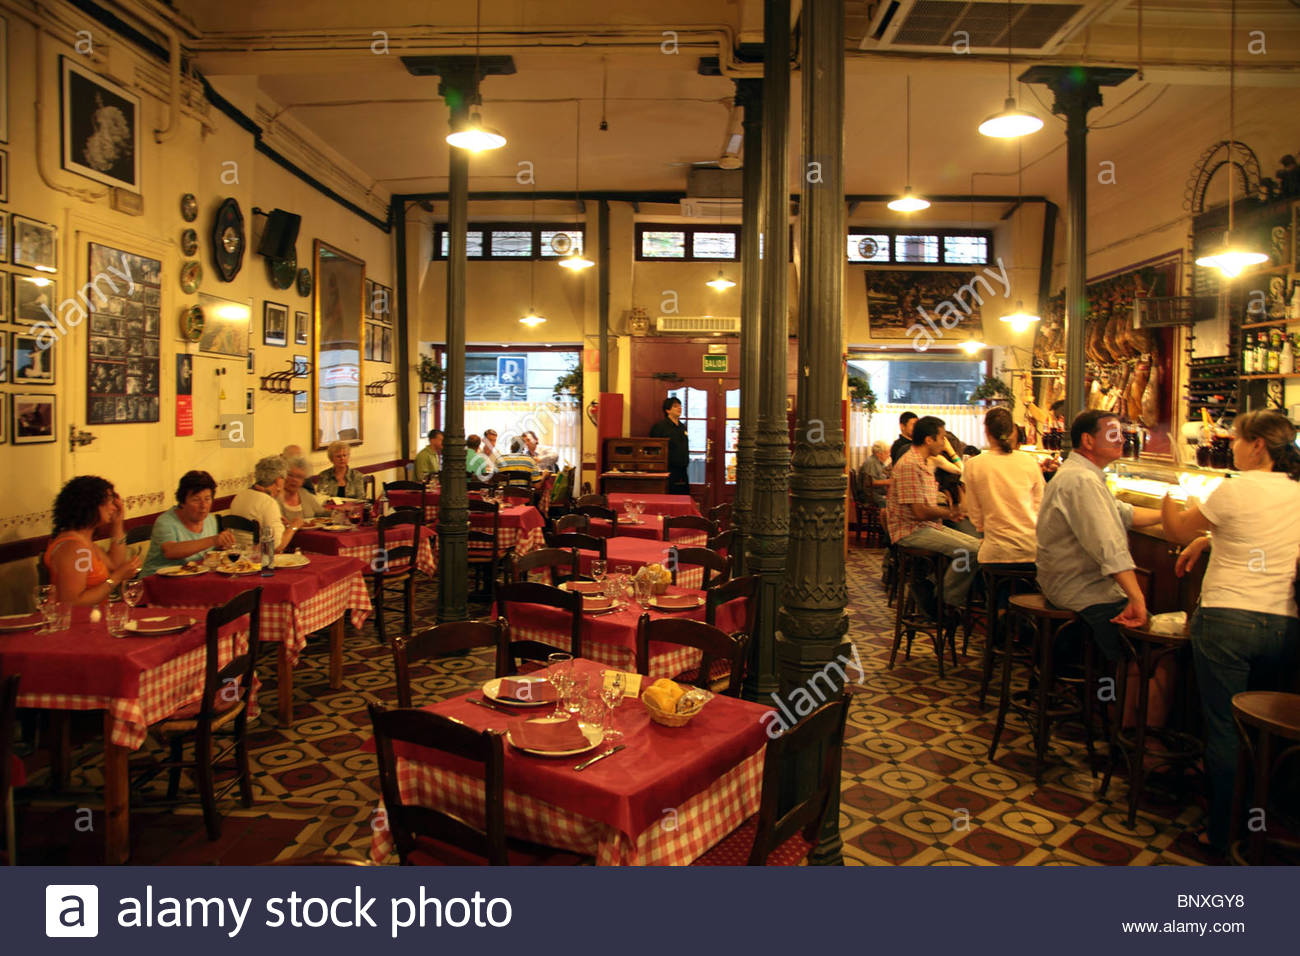 the interior view of the traditional flamenco show restaurant casa stock photo 30702204 alamy. Black Bedroom Furniture Sets. Home Design Ideas